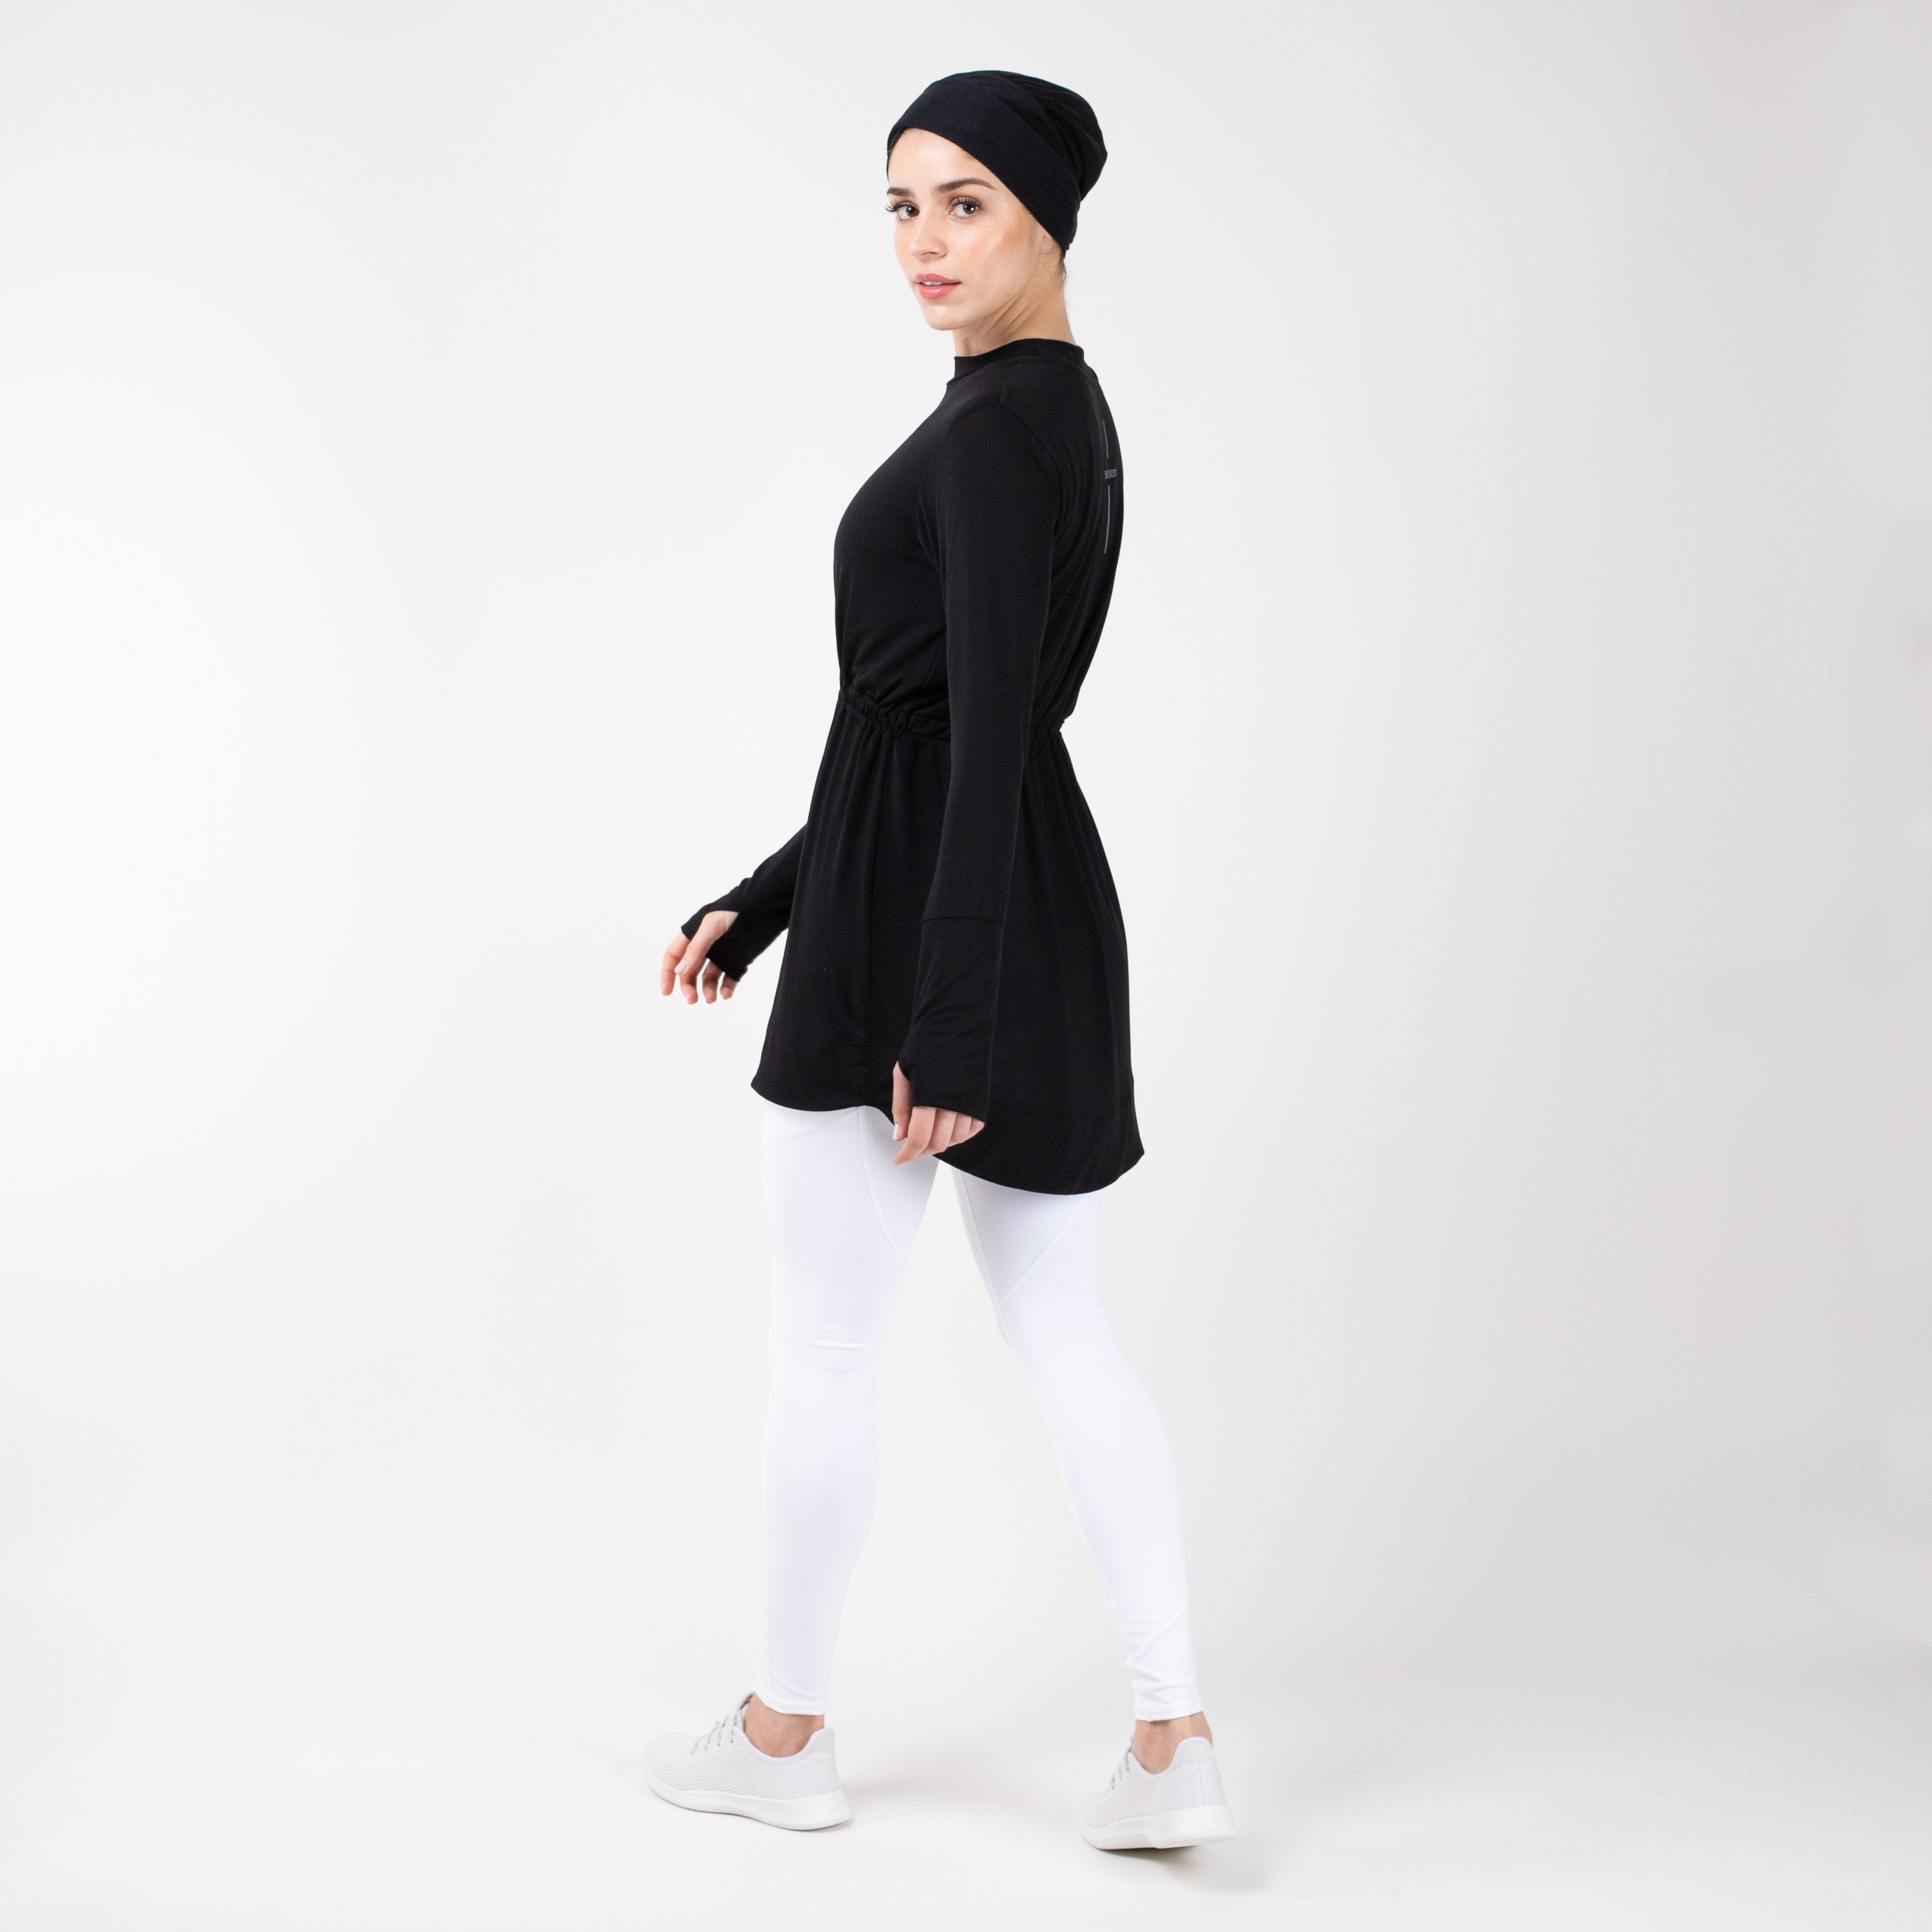 Woman turned to the left side in modest, black HAWA drawstring tee shirt and white leggings in front of a white backdrop.